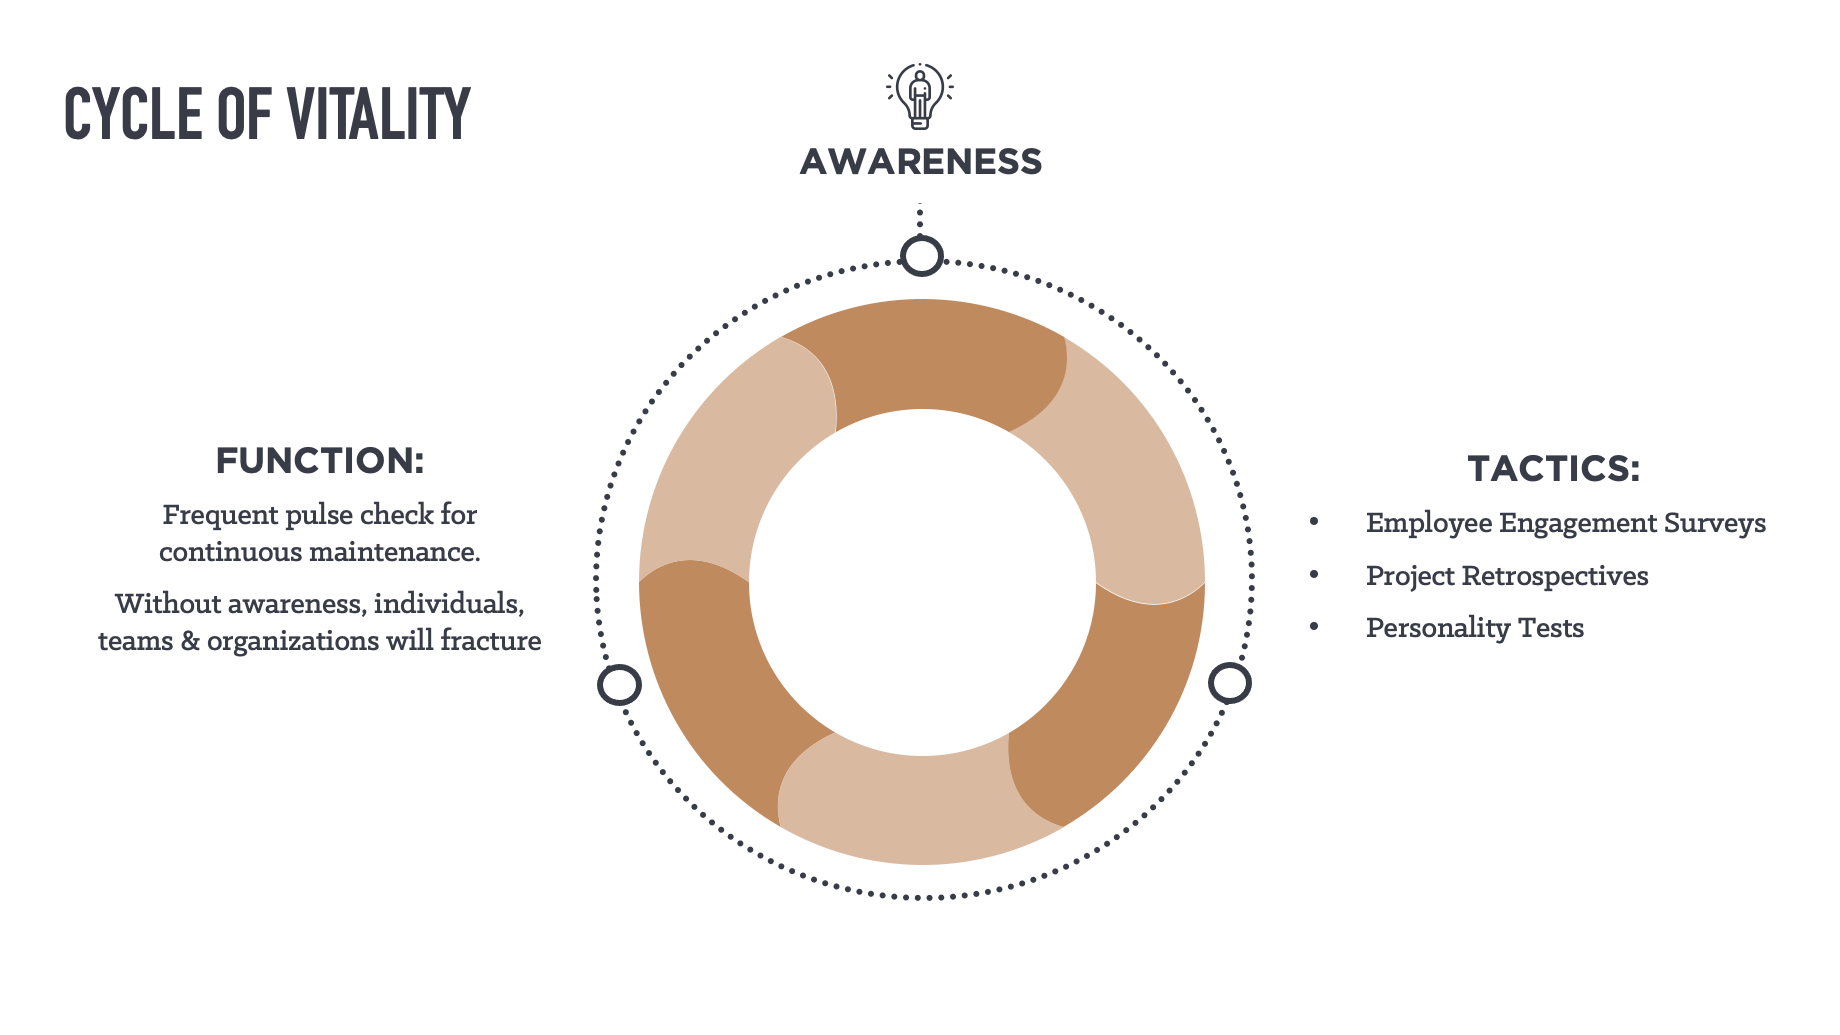 Phase 1 of the Vitality Model: Awareness